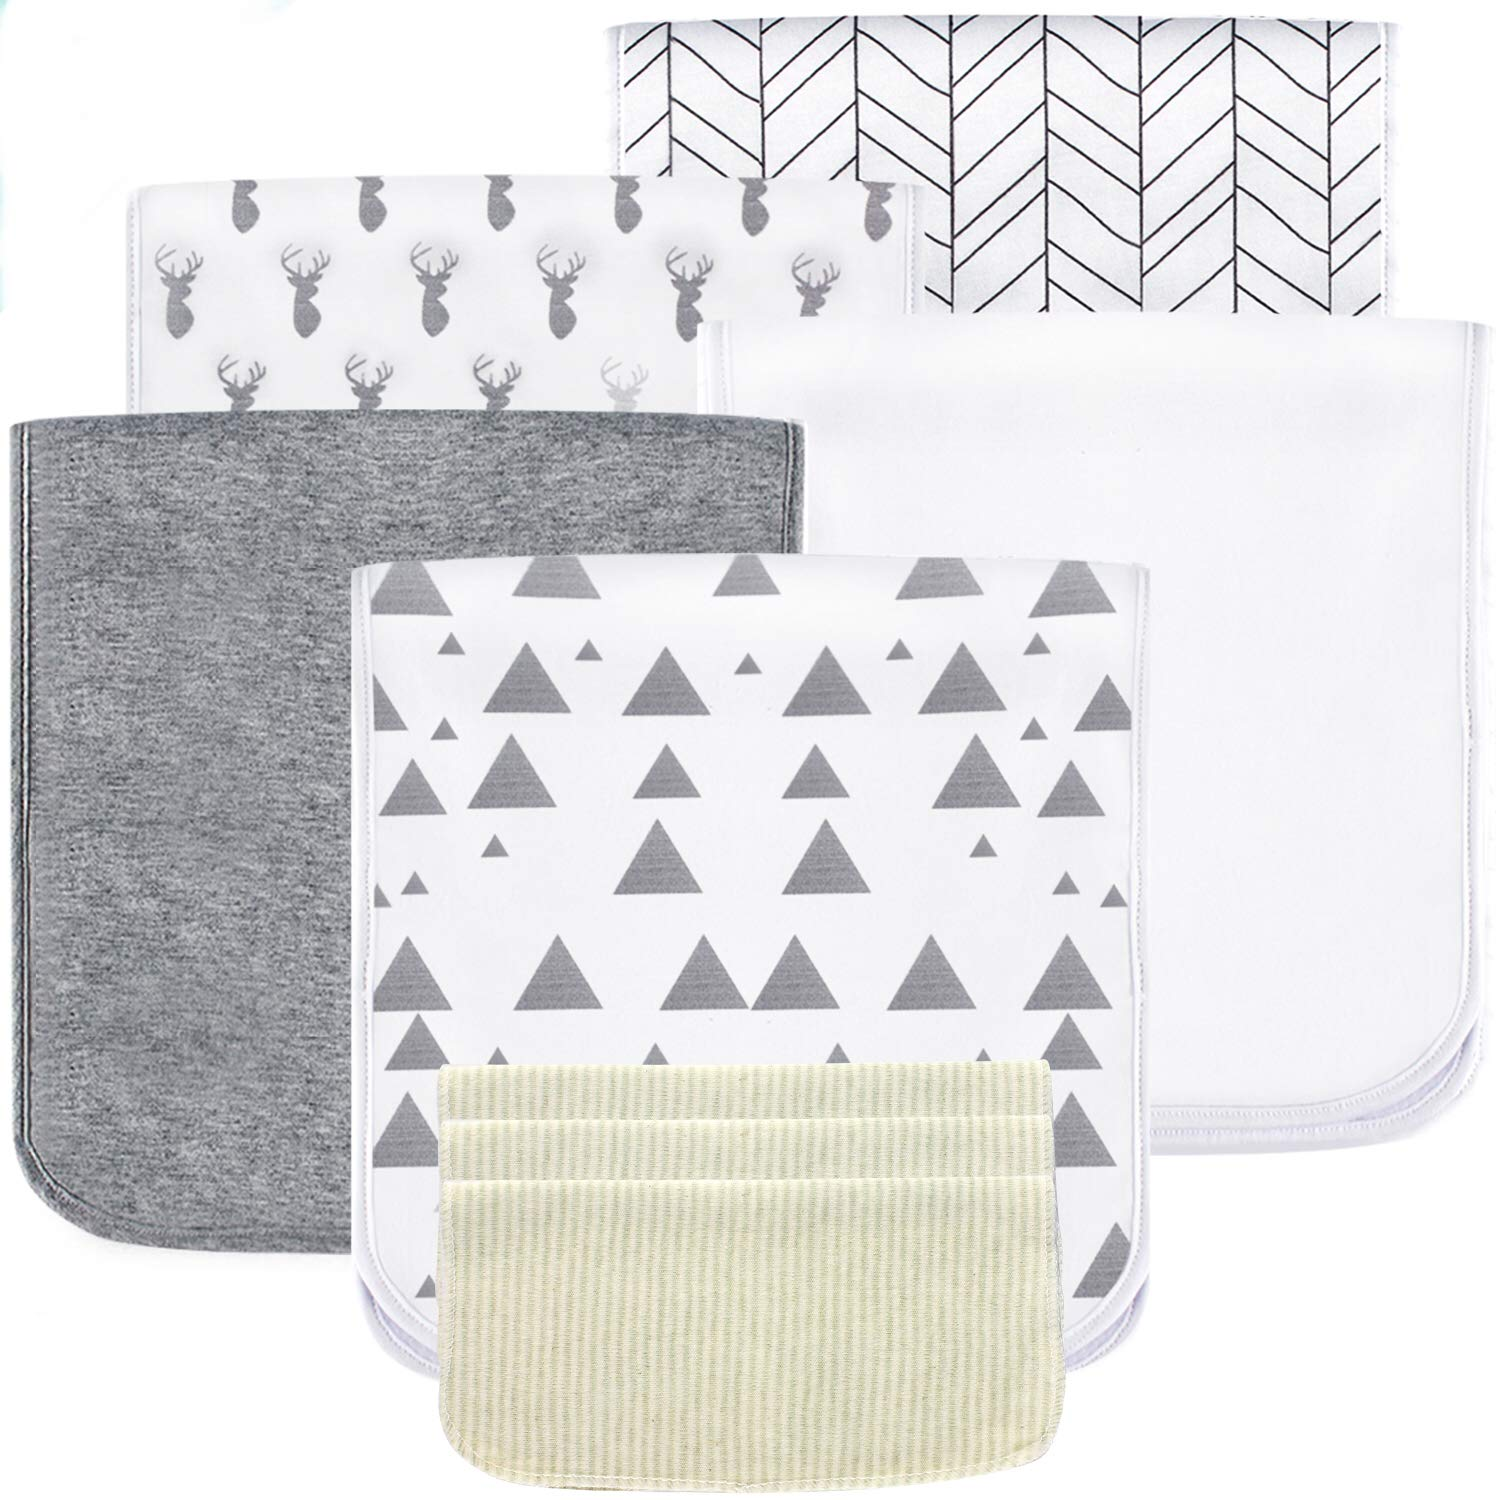 5 Pack Baby Burp Cloths Set - Upgraded Ultra Absorbent 100% Organic Cotton, Soft and Breathable Towels, Larger 21''×10'', Double Layer with 3 Pack Small Baby Washcloths for Newborns, Boys and Girls by Sysrion